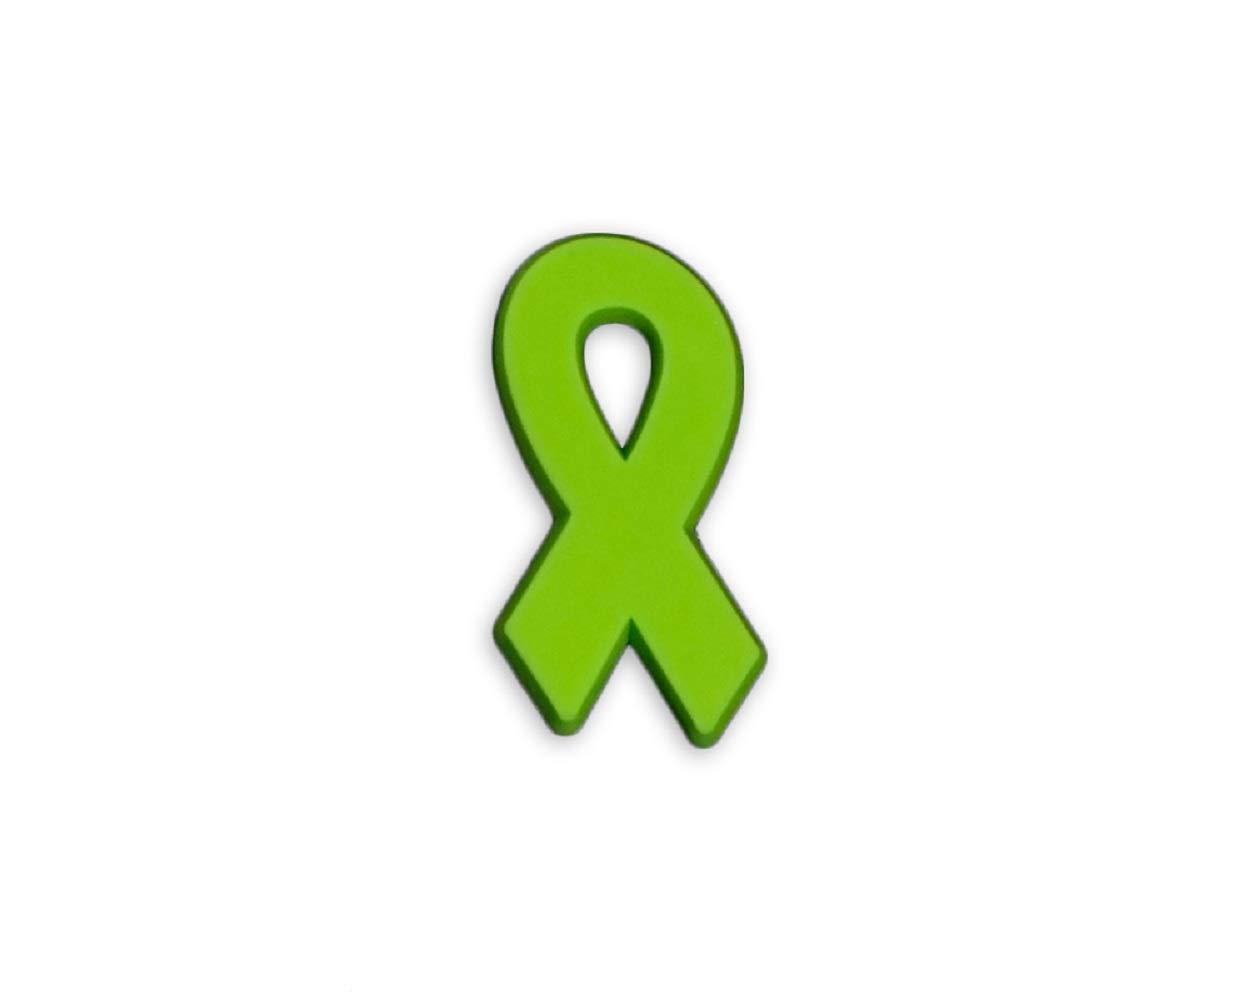 50 Pack Lyme Disease Awareness - Lime Green Ribbon Silicone Pins (50 Pins in a Bag) by Fundraising For A Cause